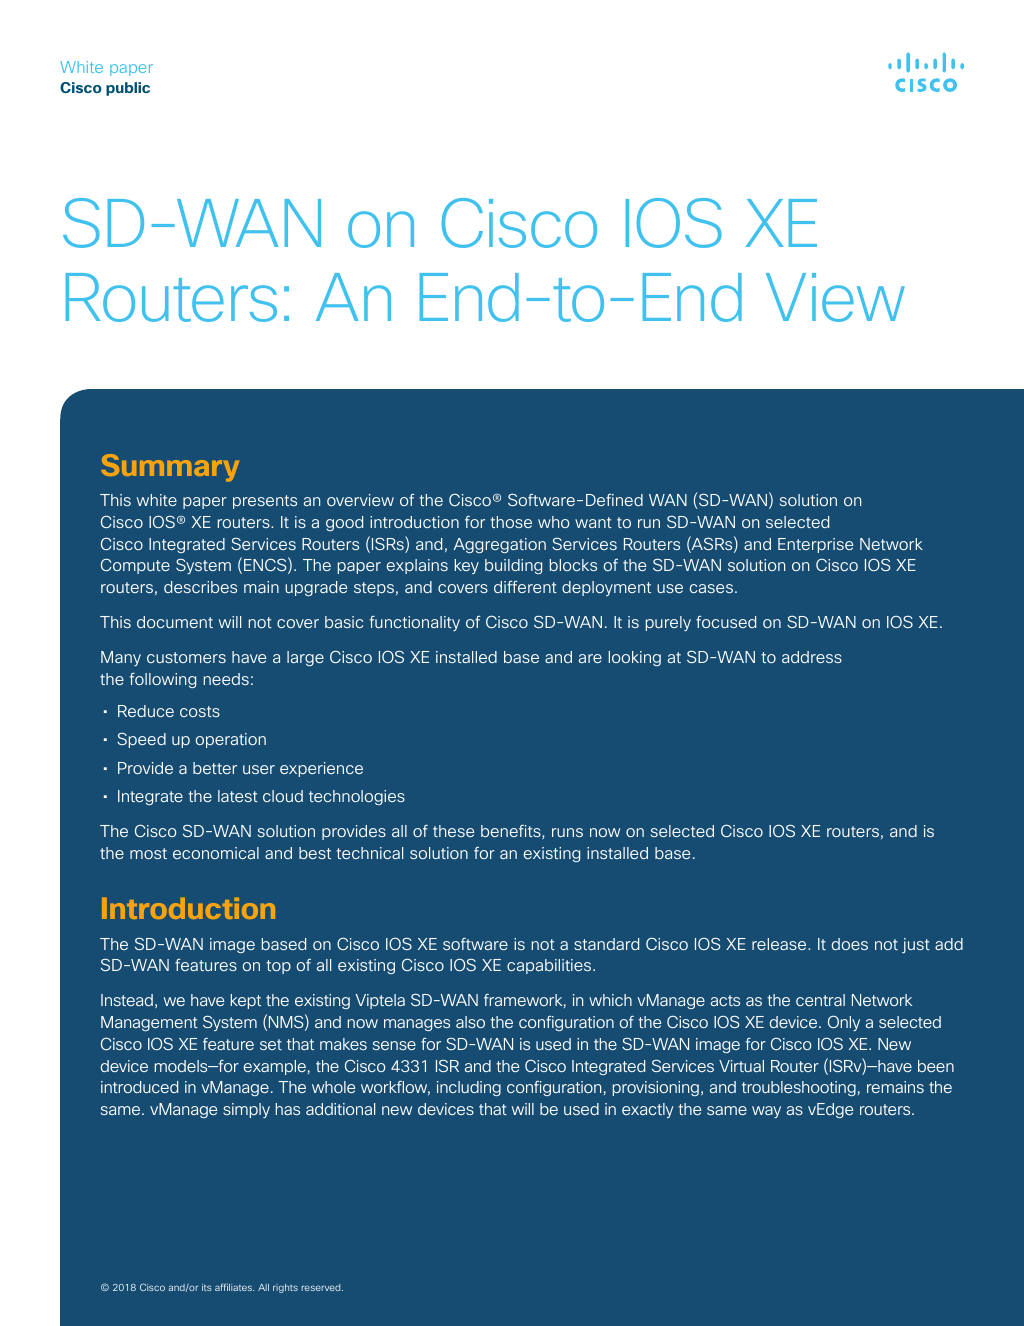 SD-WAN Configuration Migration Tool